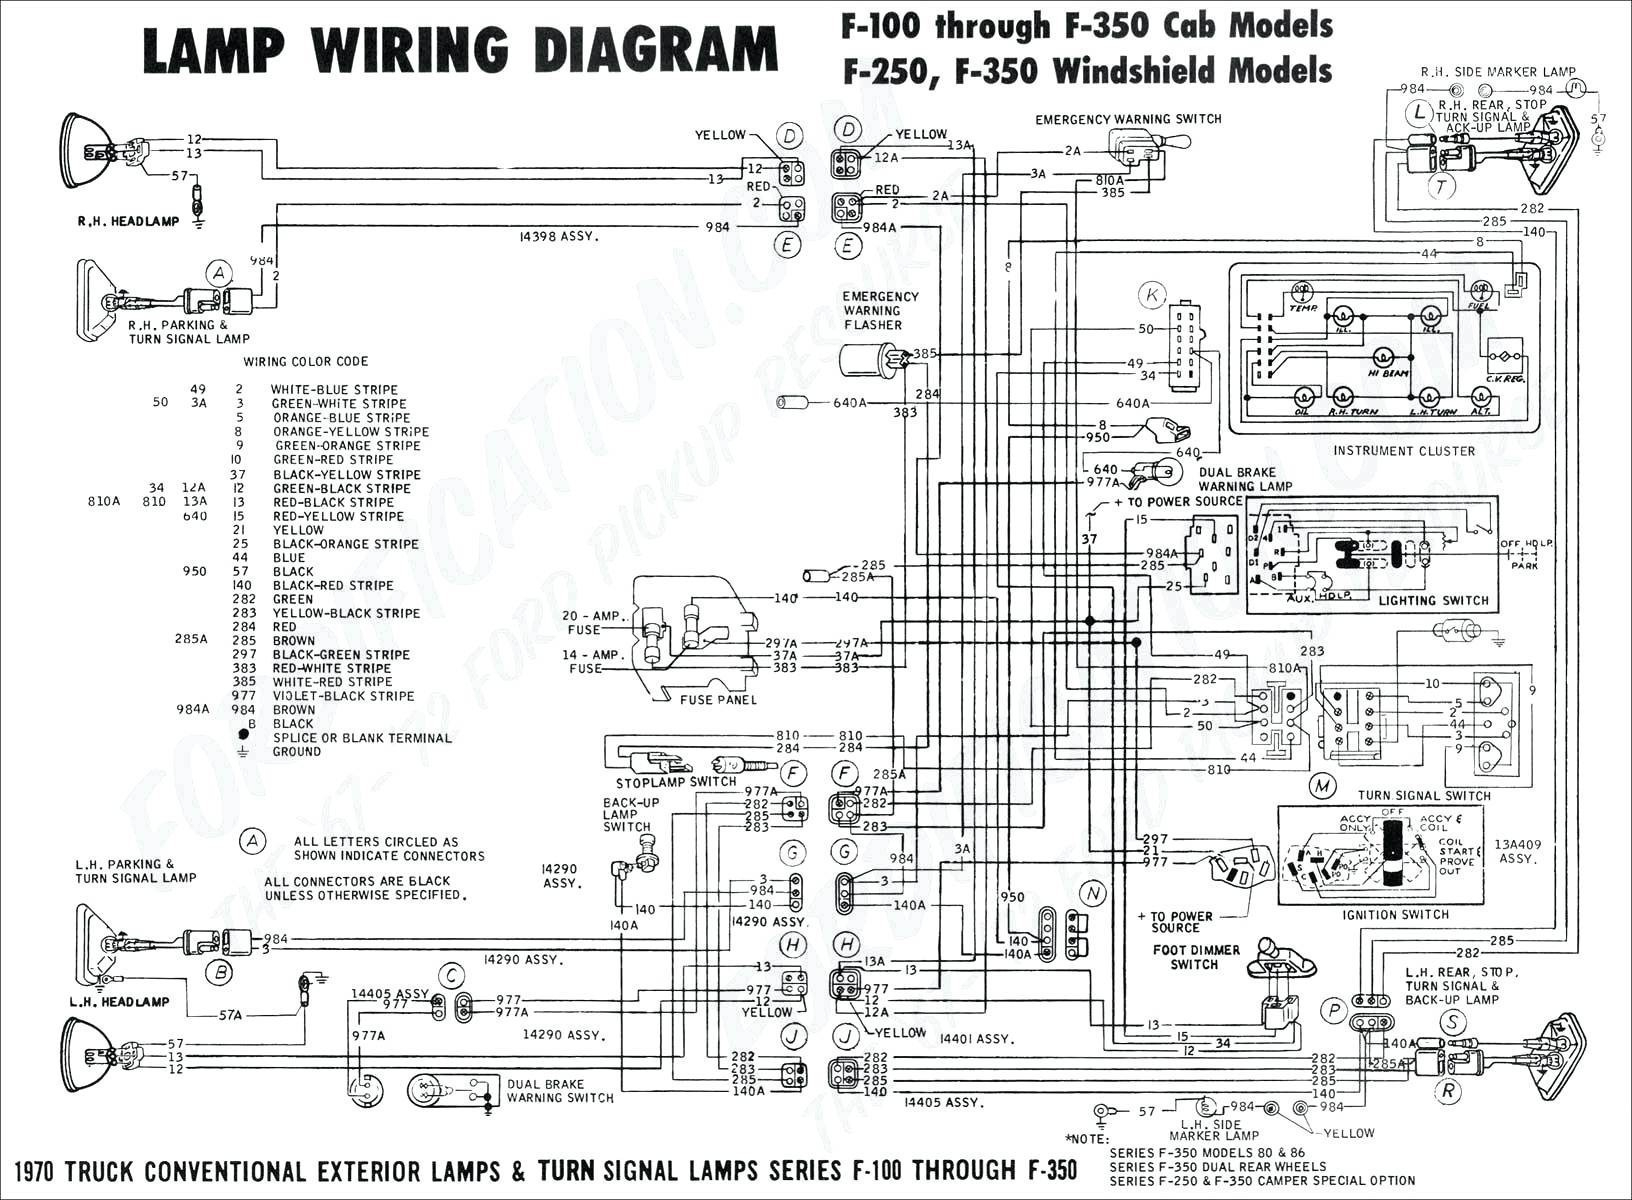 dimmer switch wiring diagram for lamp